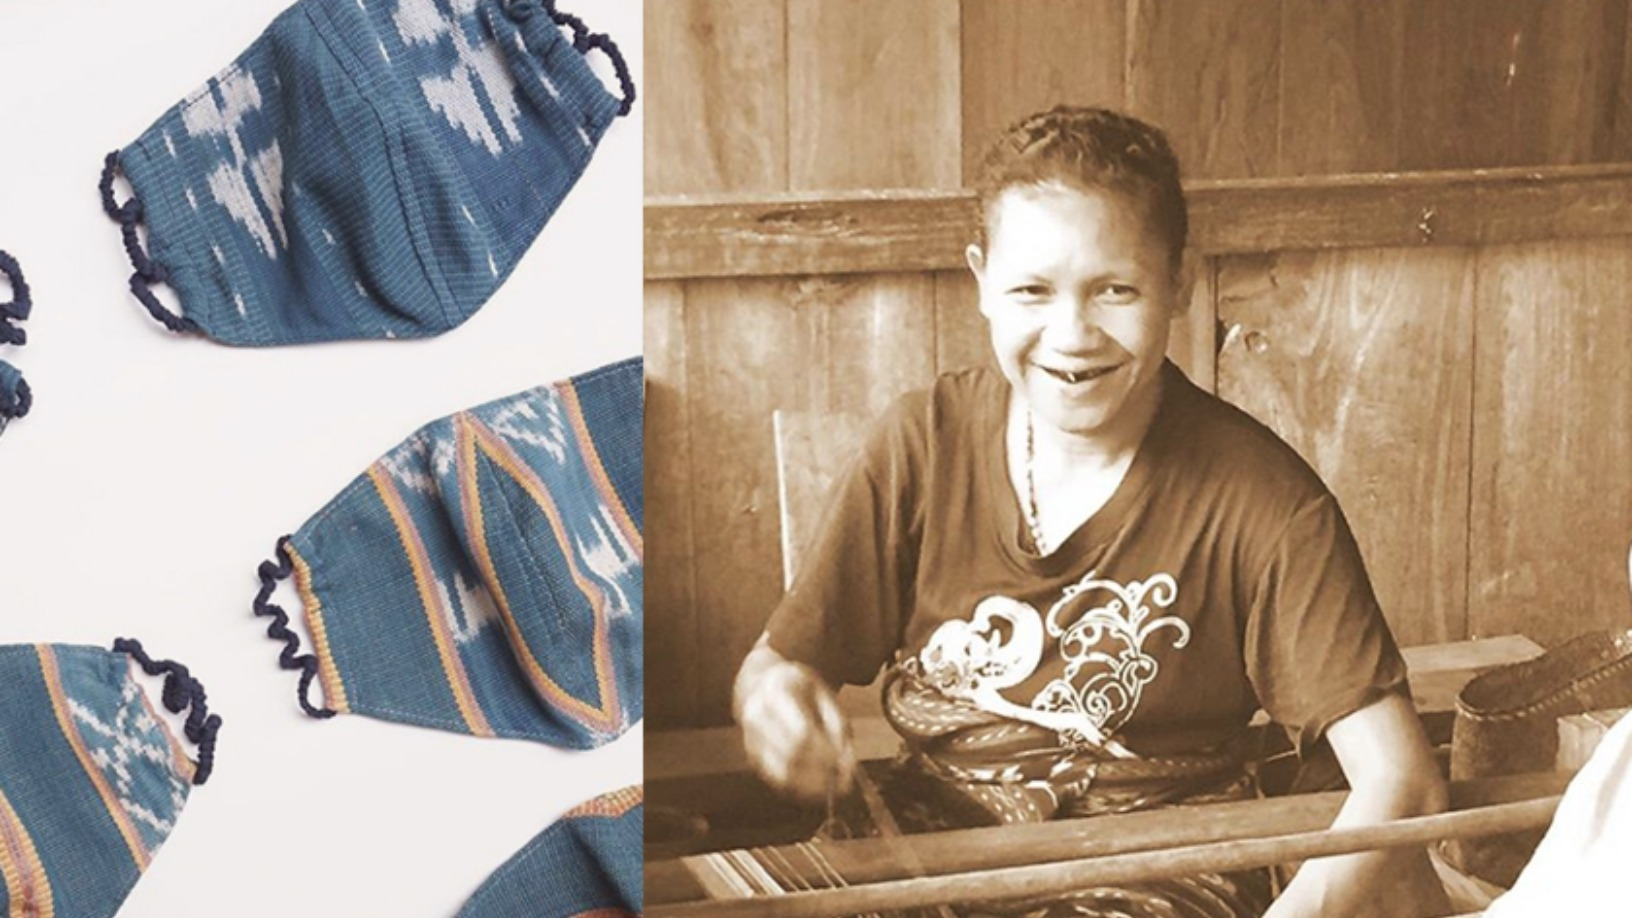 MENA and Du'Anyam: How two Indonesian social enterprises are tackling Covid-19 challenges